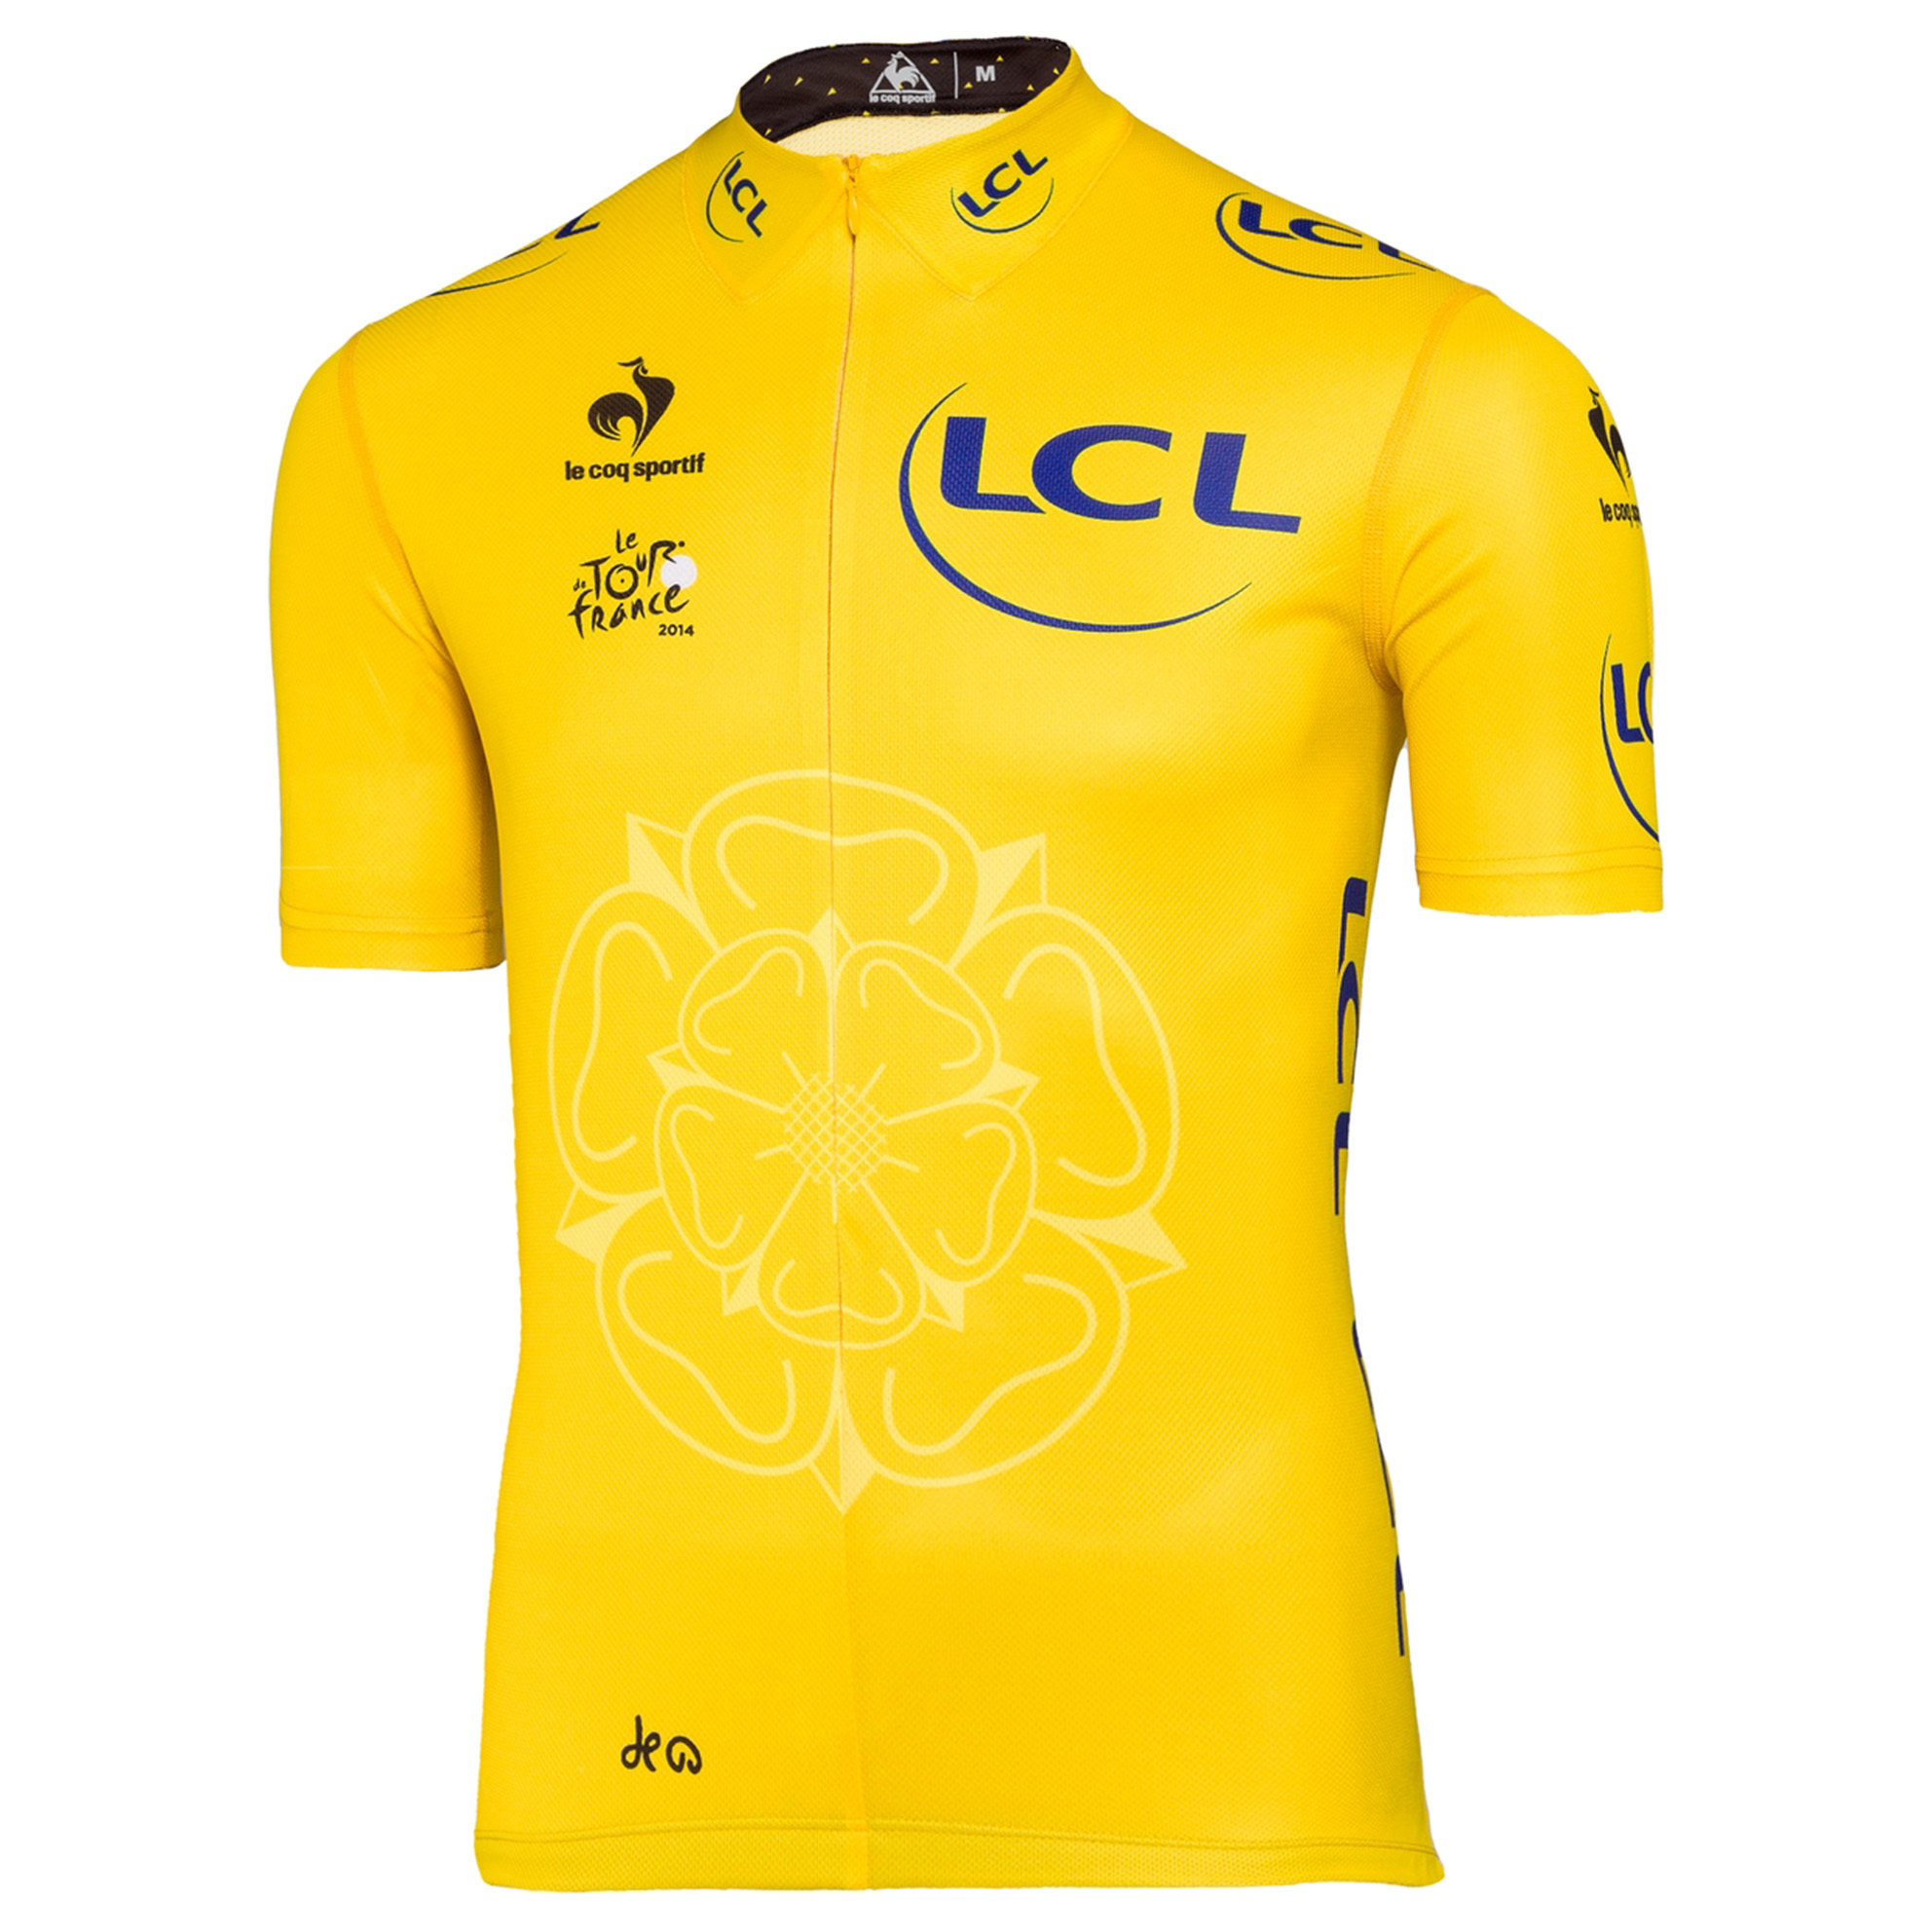 Le Tour de France Le Coq Sportif Replica Jersey - Yellow